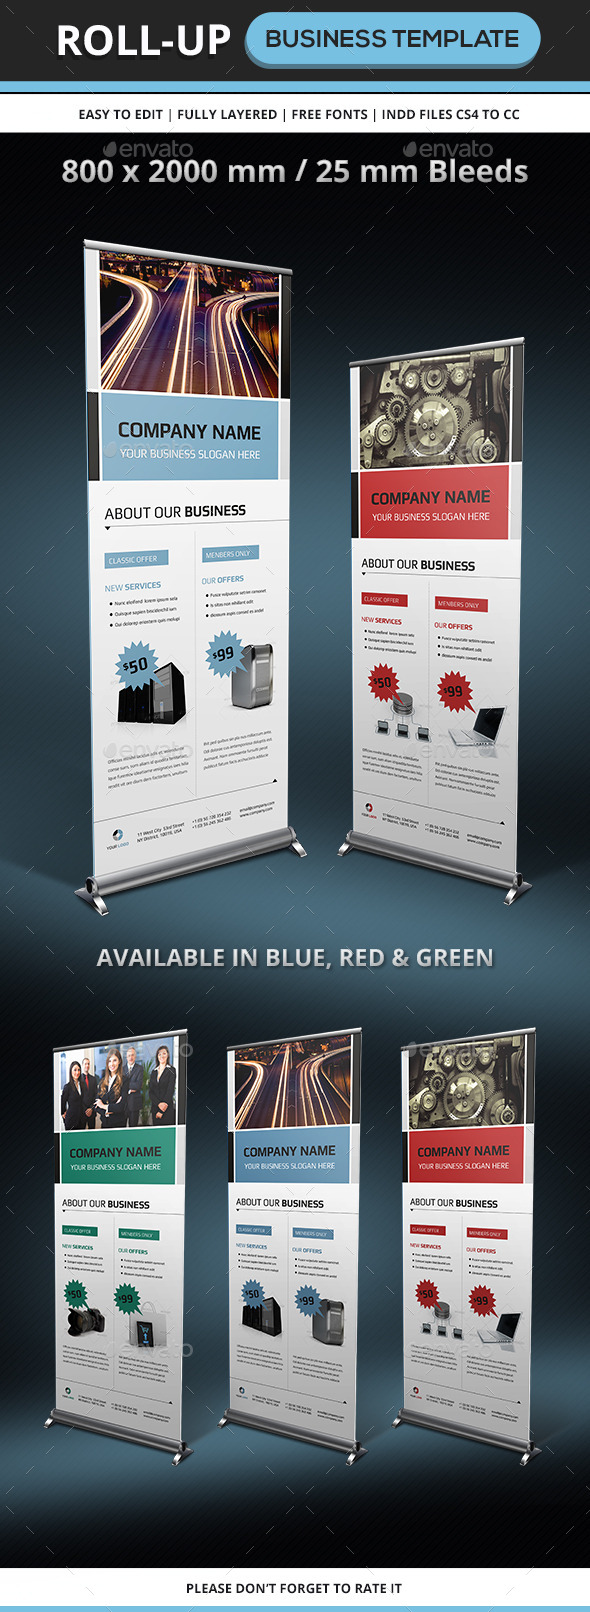 GraphicRiver Corporate & Business Rollup Template 8895823